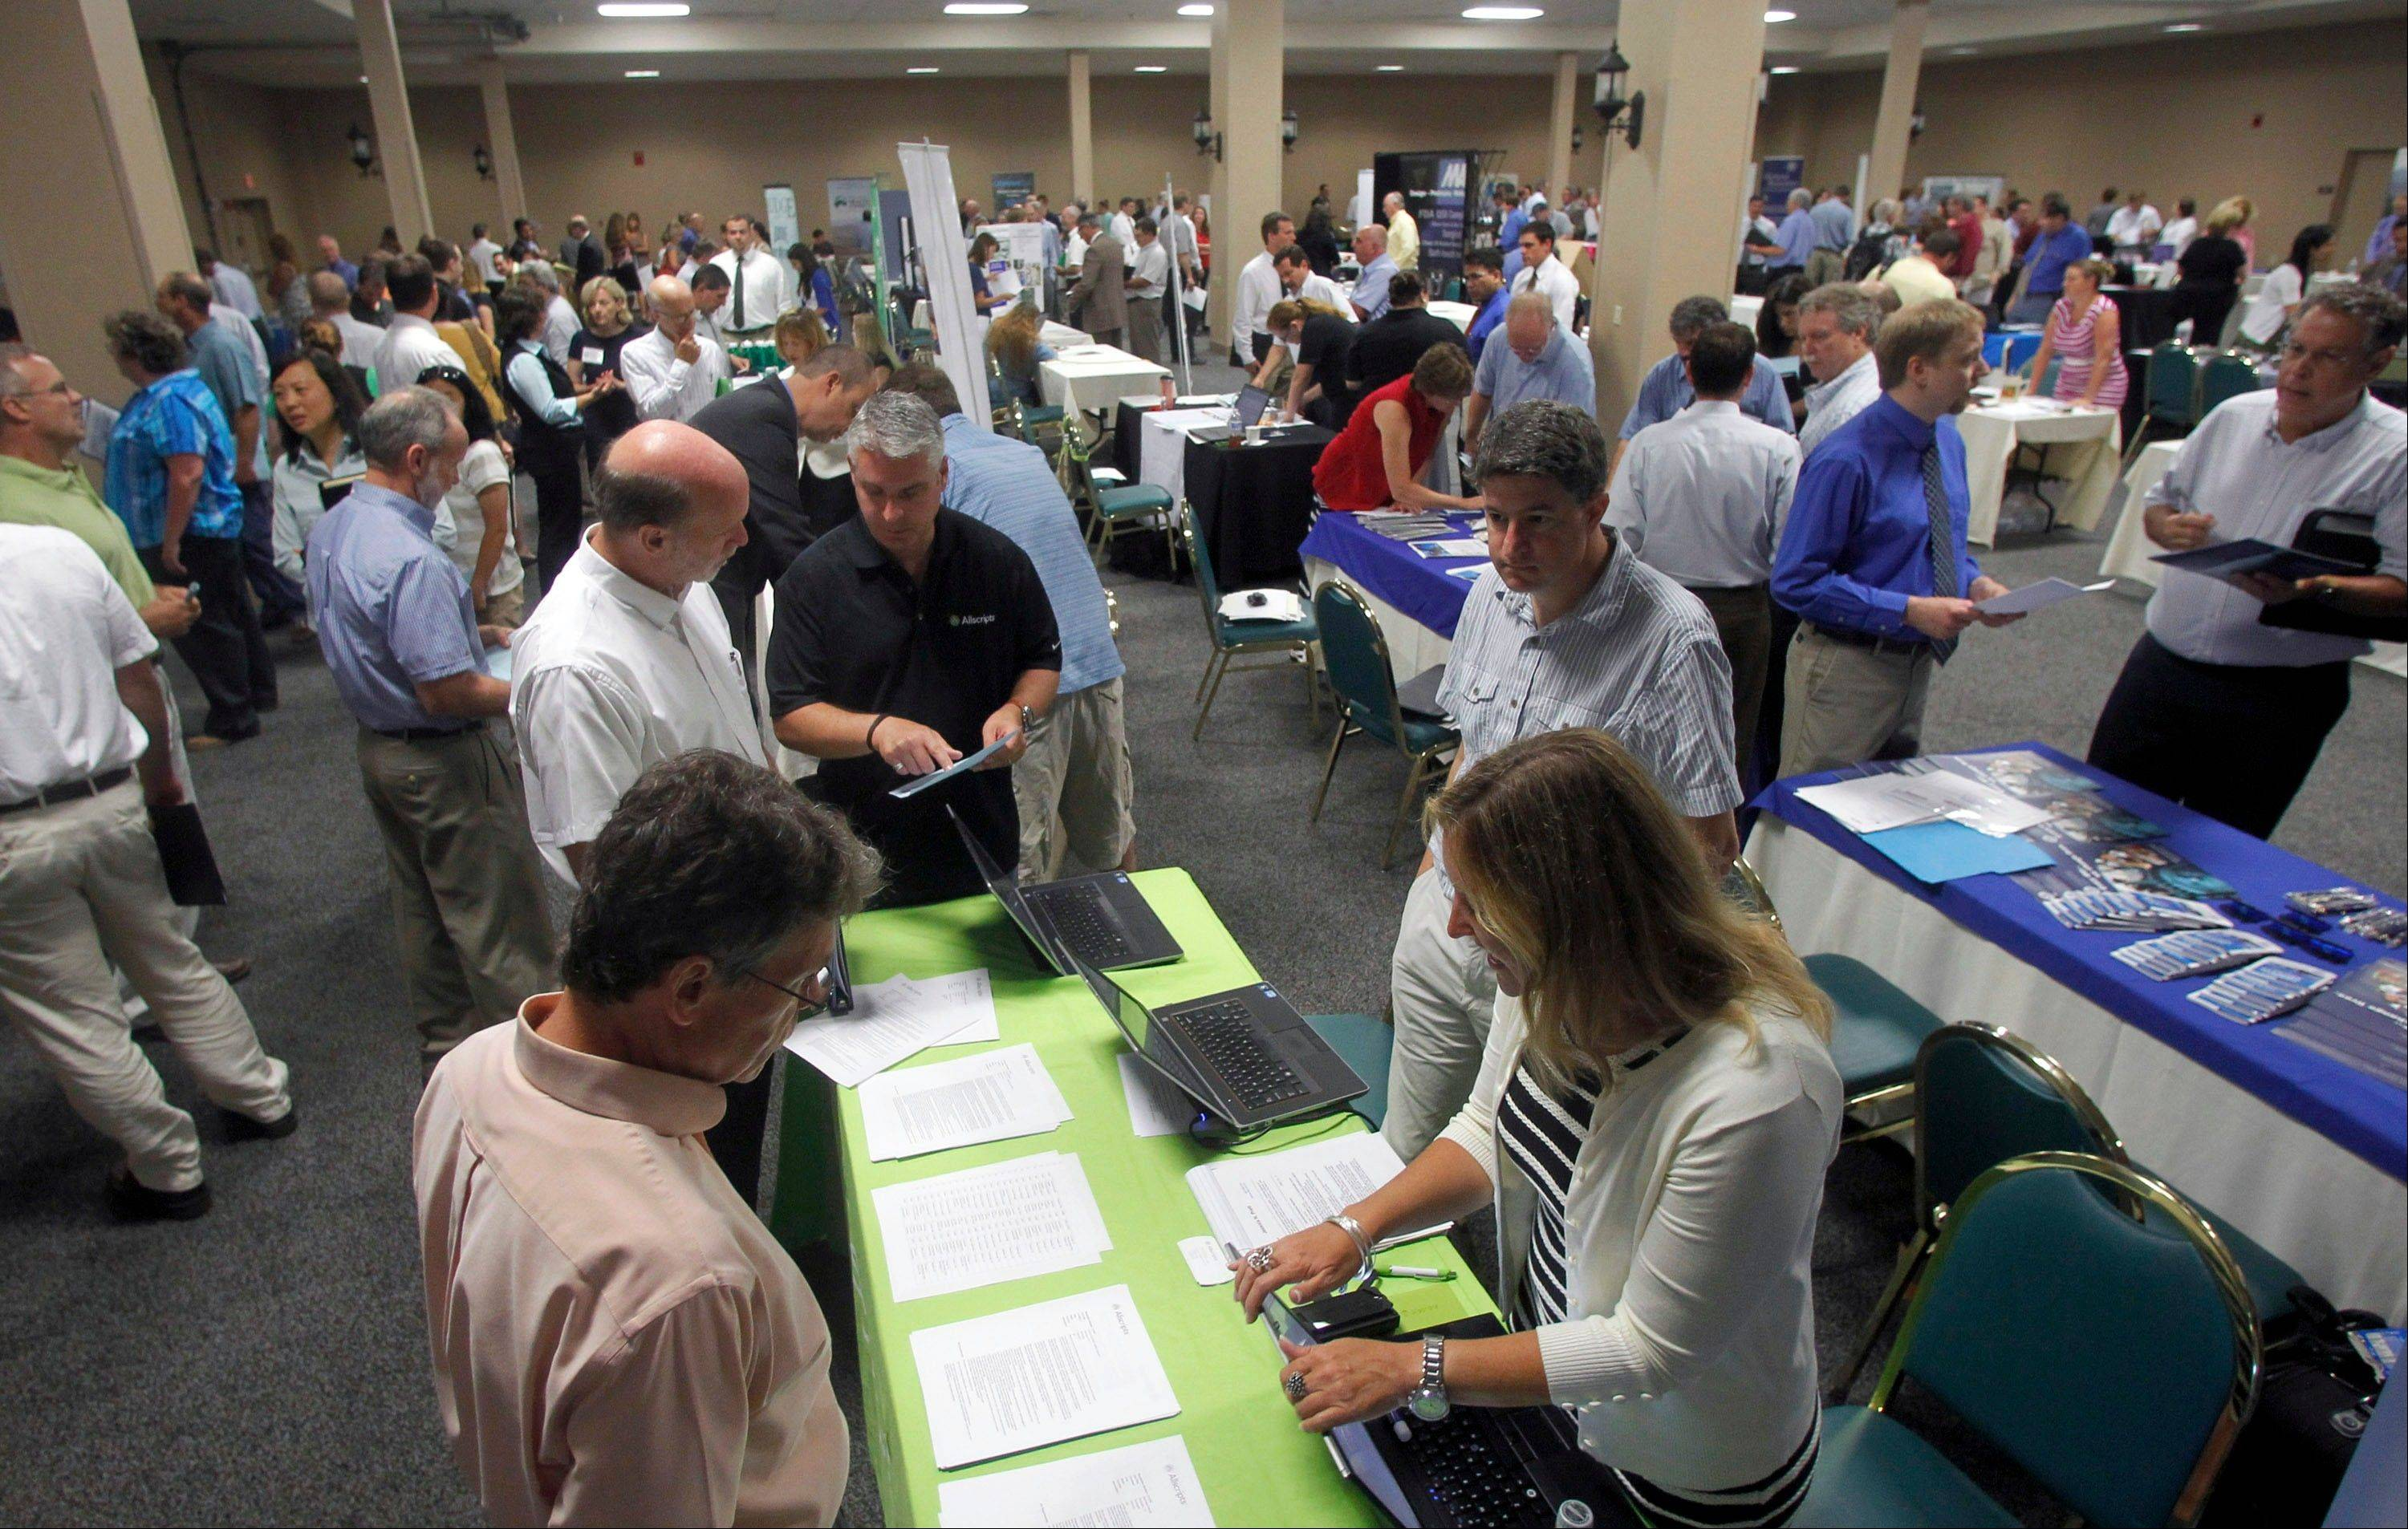 People fill up a job fair in South Burlington, Vt. Small businesses hired at a slow pace during 2013.